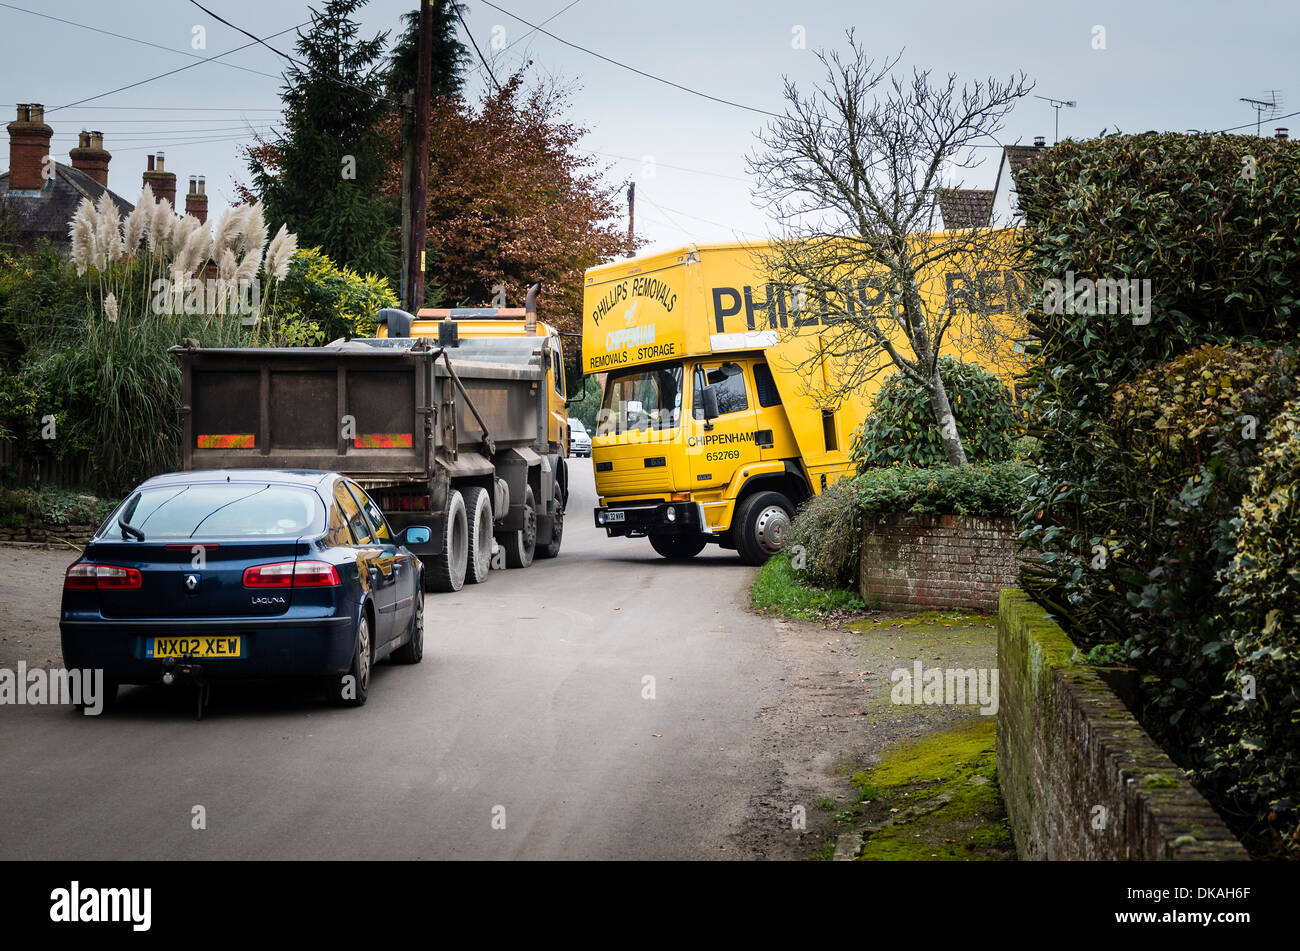 A removal van causing traffic congestion in a country lane in Wiltshire UK - Stock Image